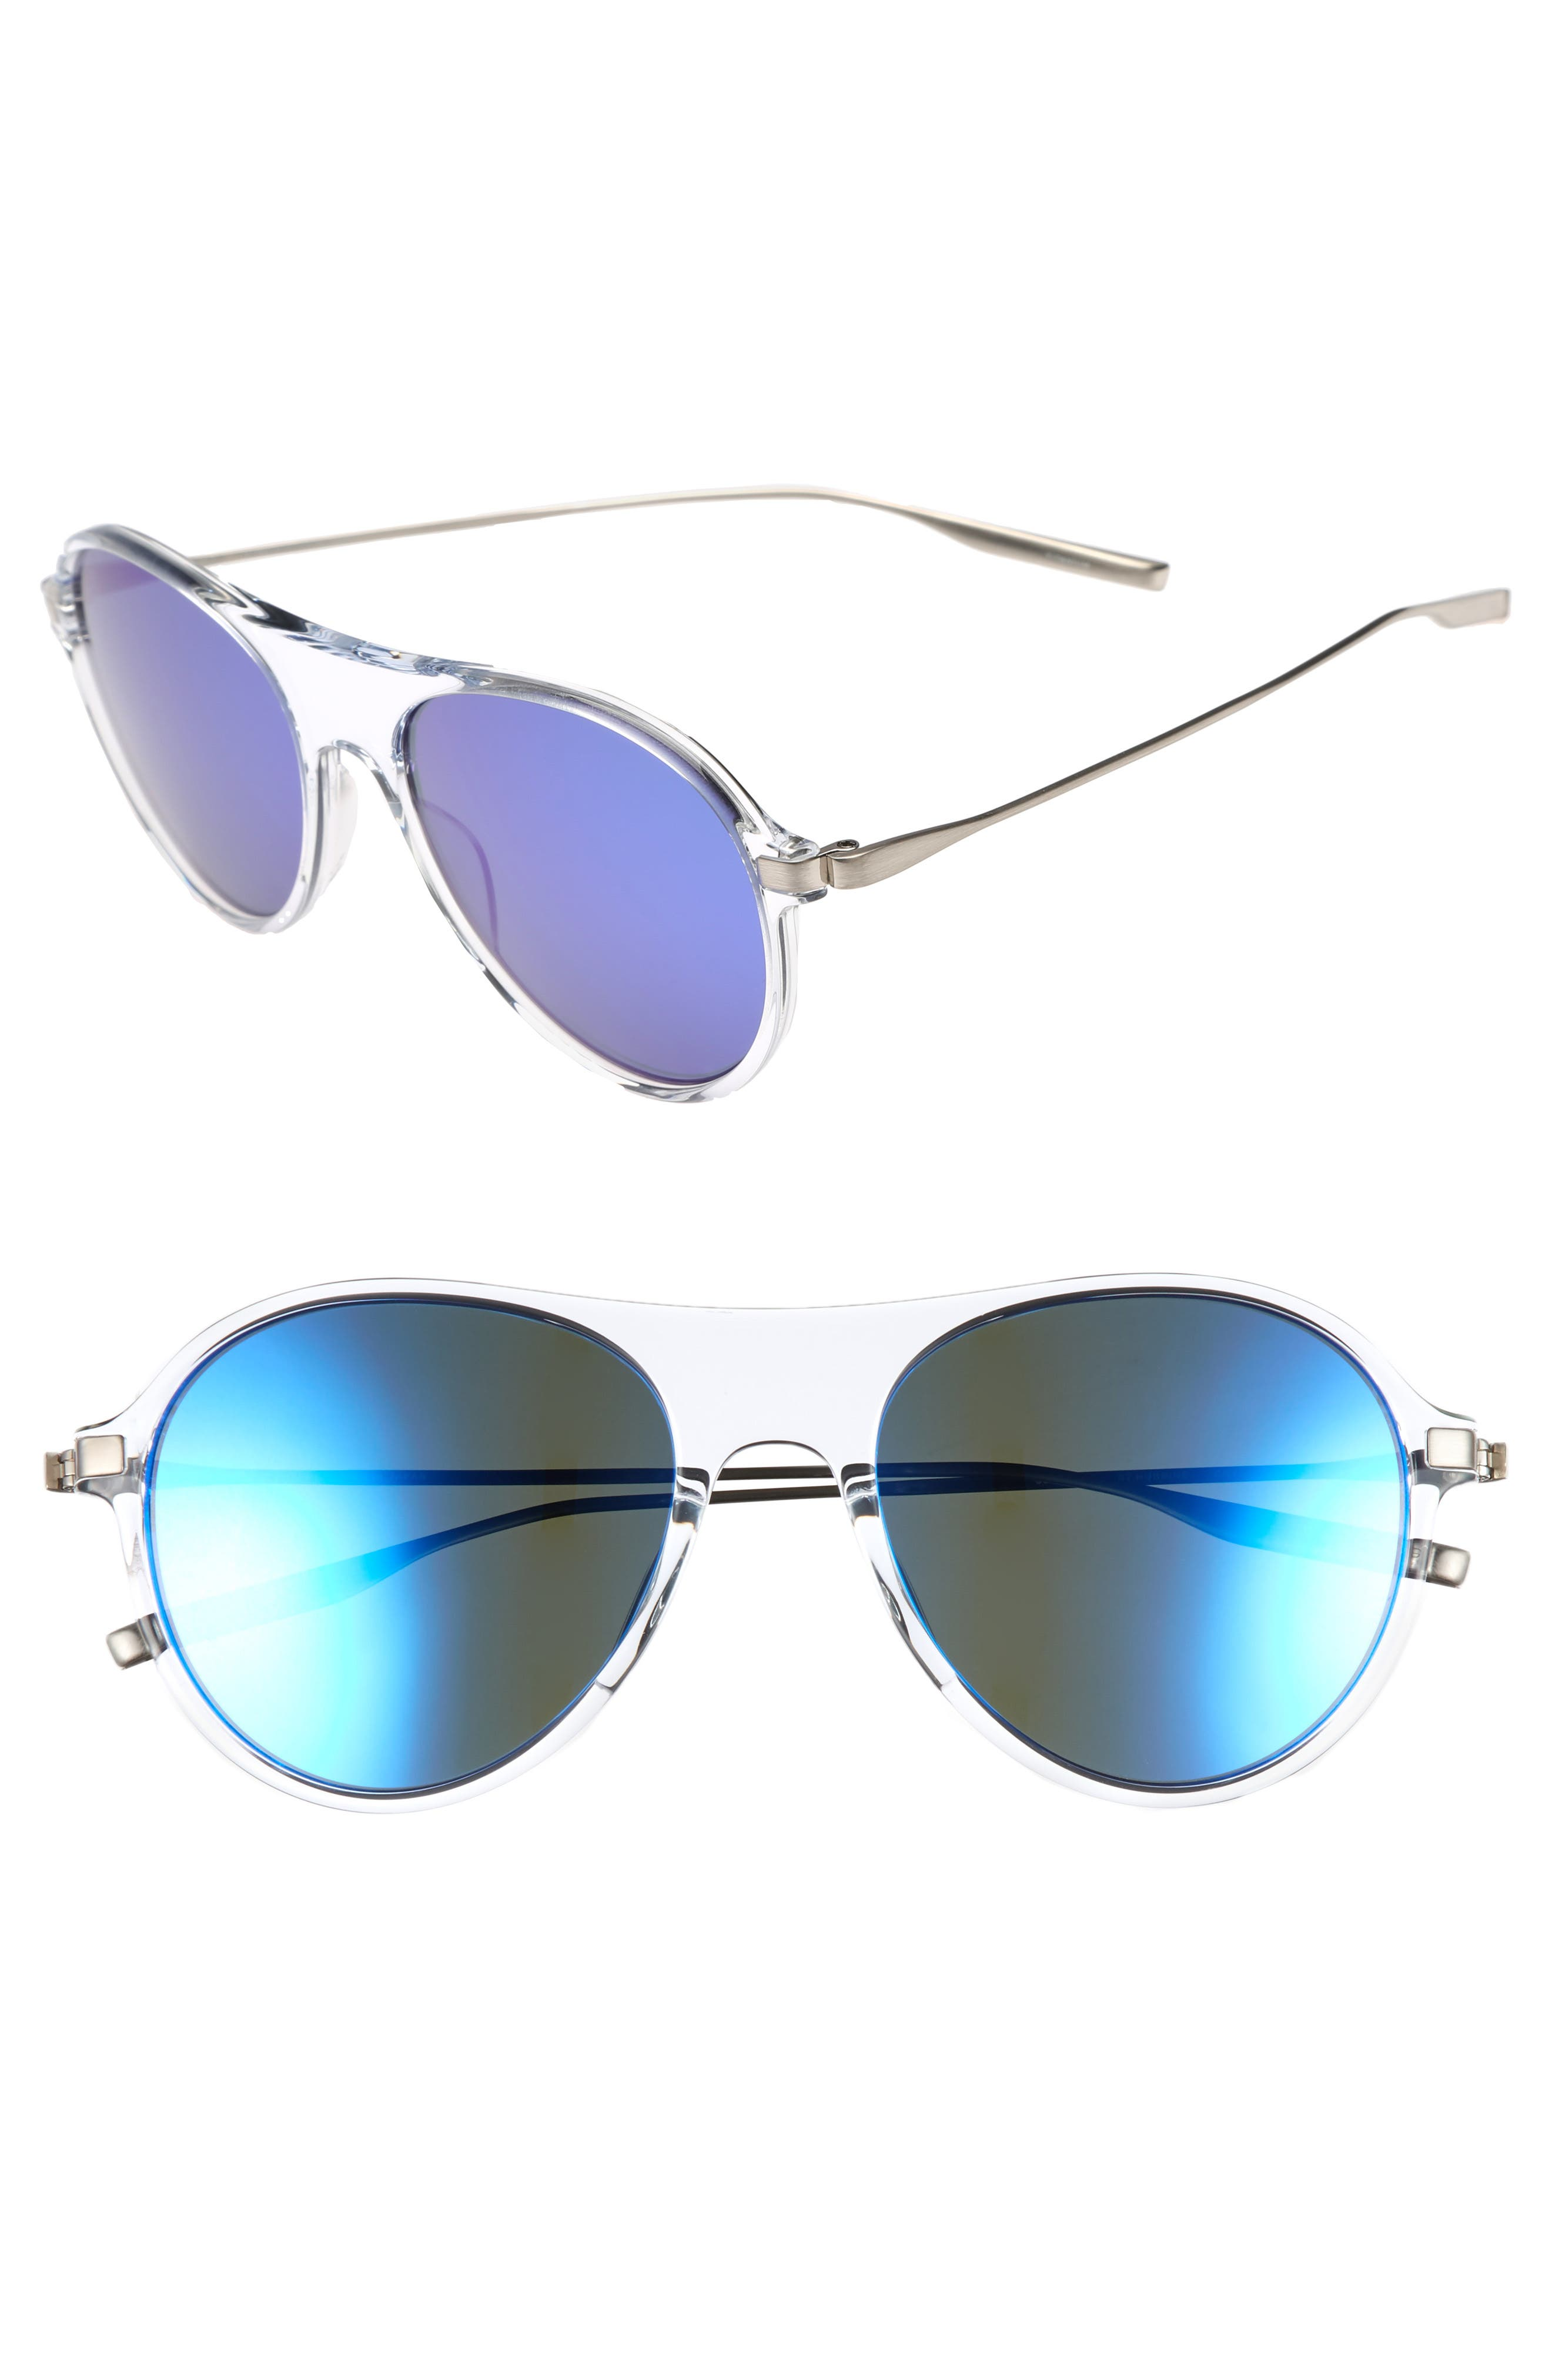 St. Hubbins 55mm Polarized Sunglasses,                             Main thumbnail 1, color,                             Crystal / Tempest